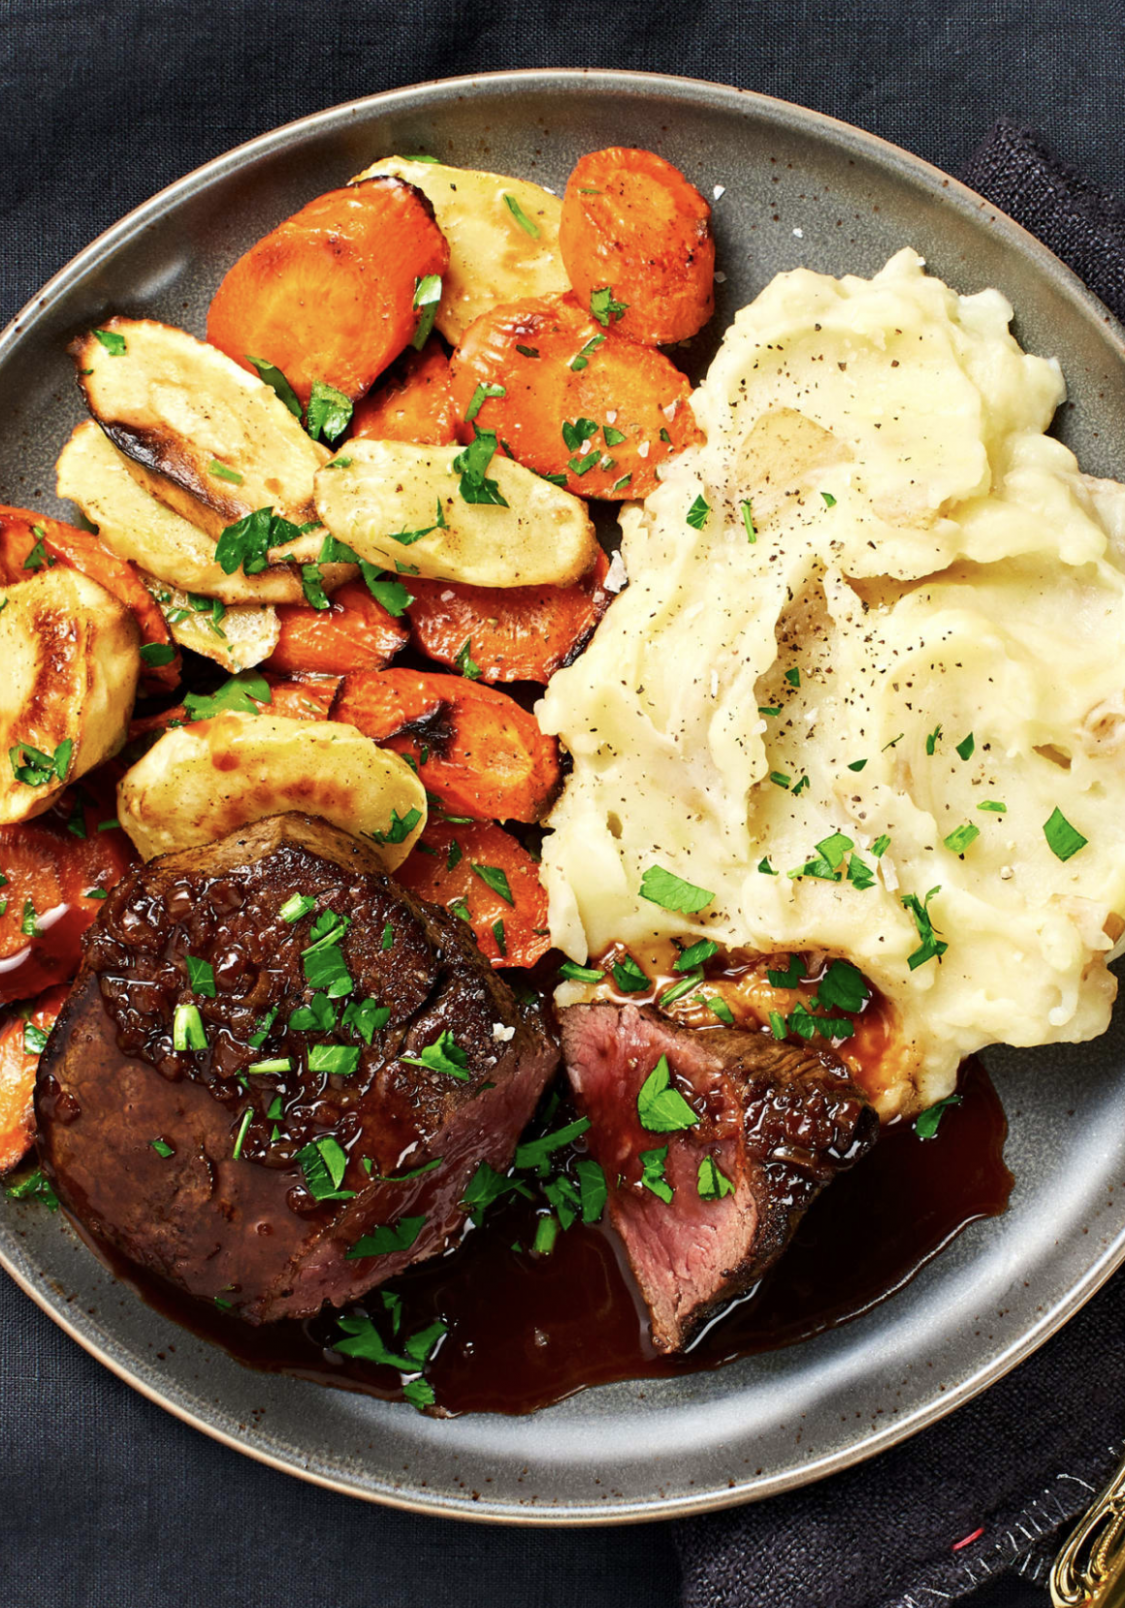 Beef Tenderloin with Brown Butter Roasted Veggies and Cheesy Mashed Potatoes - Dinner Recipes Gourmet